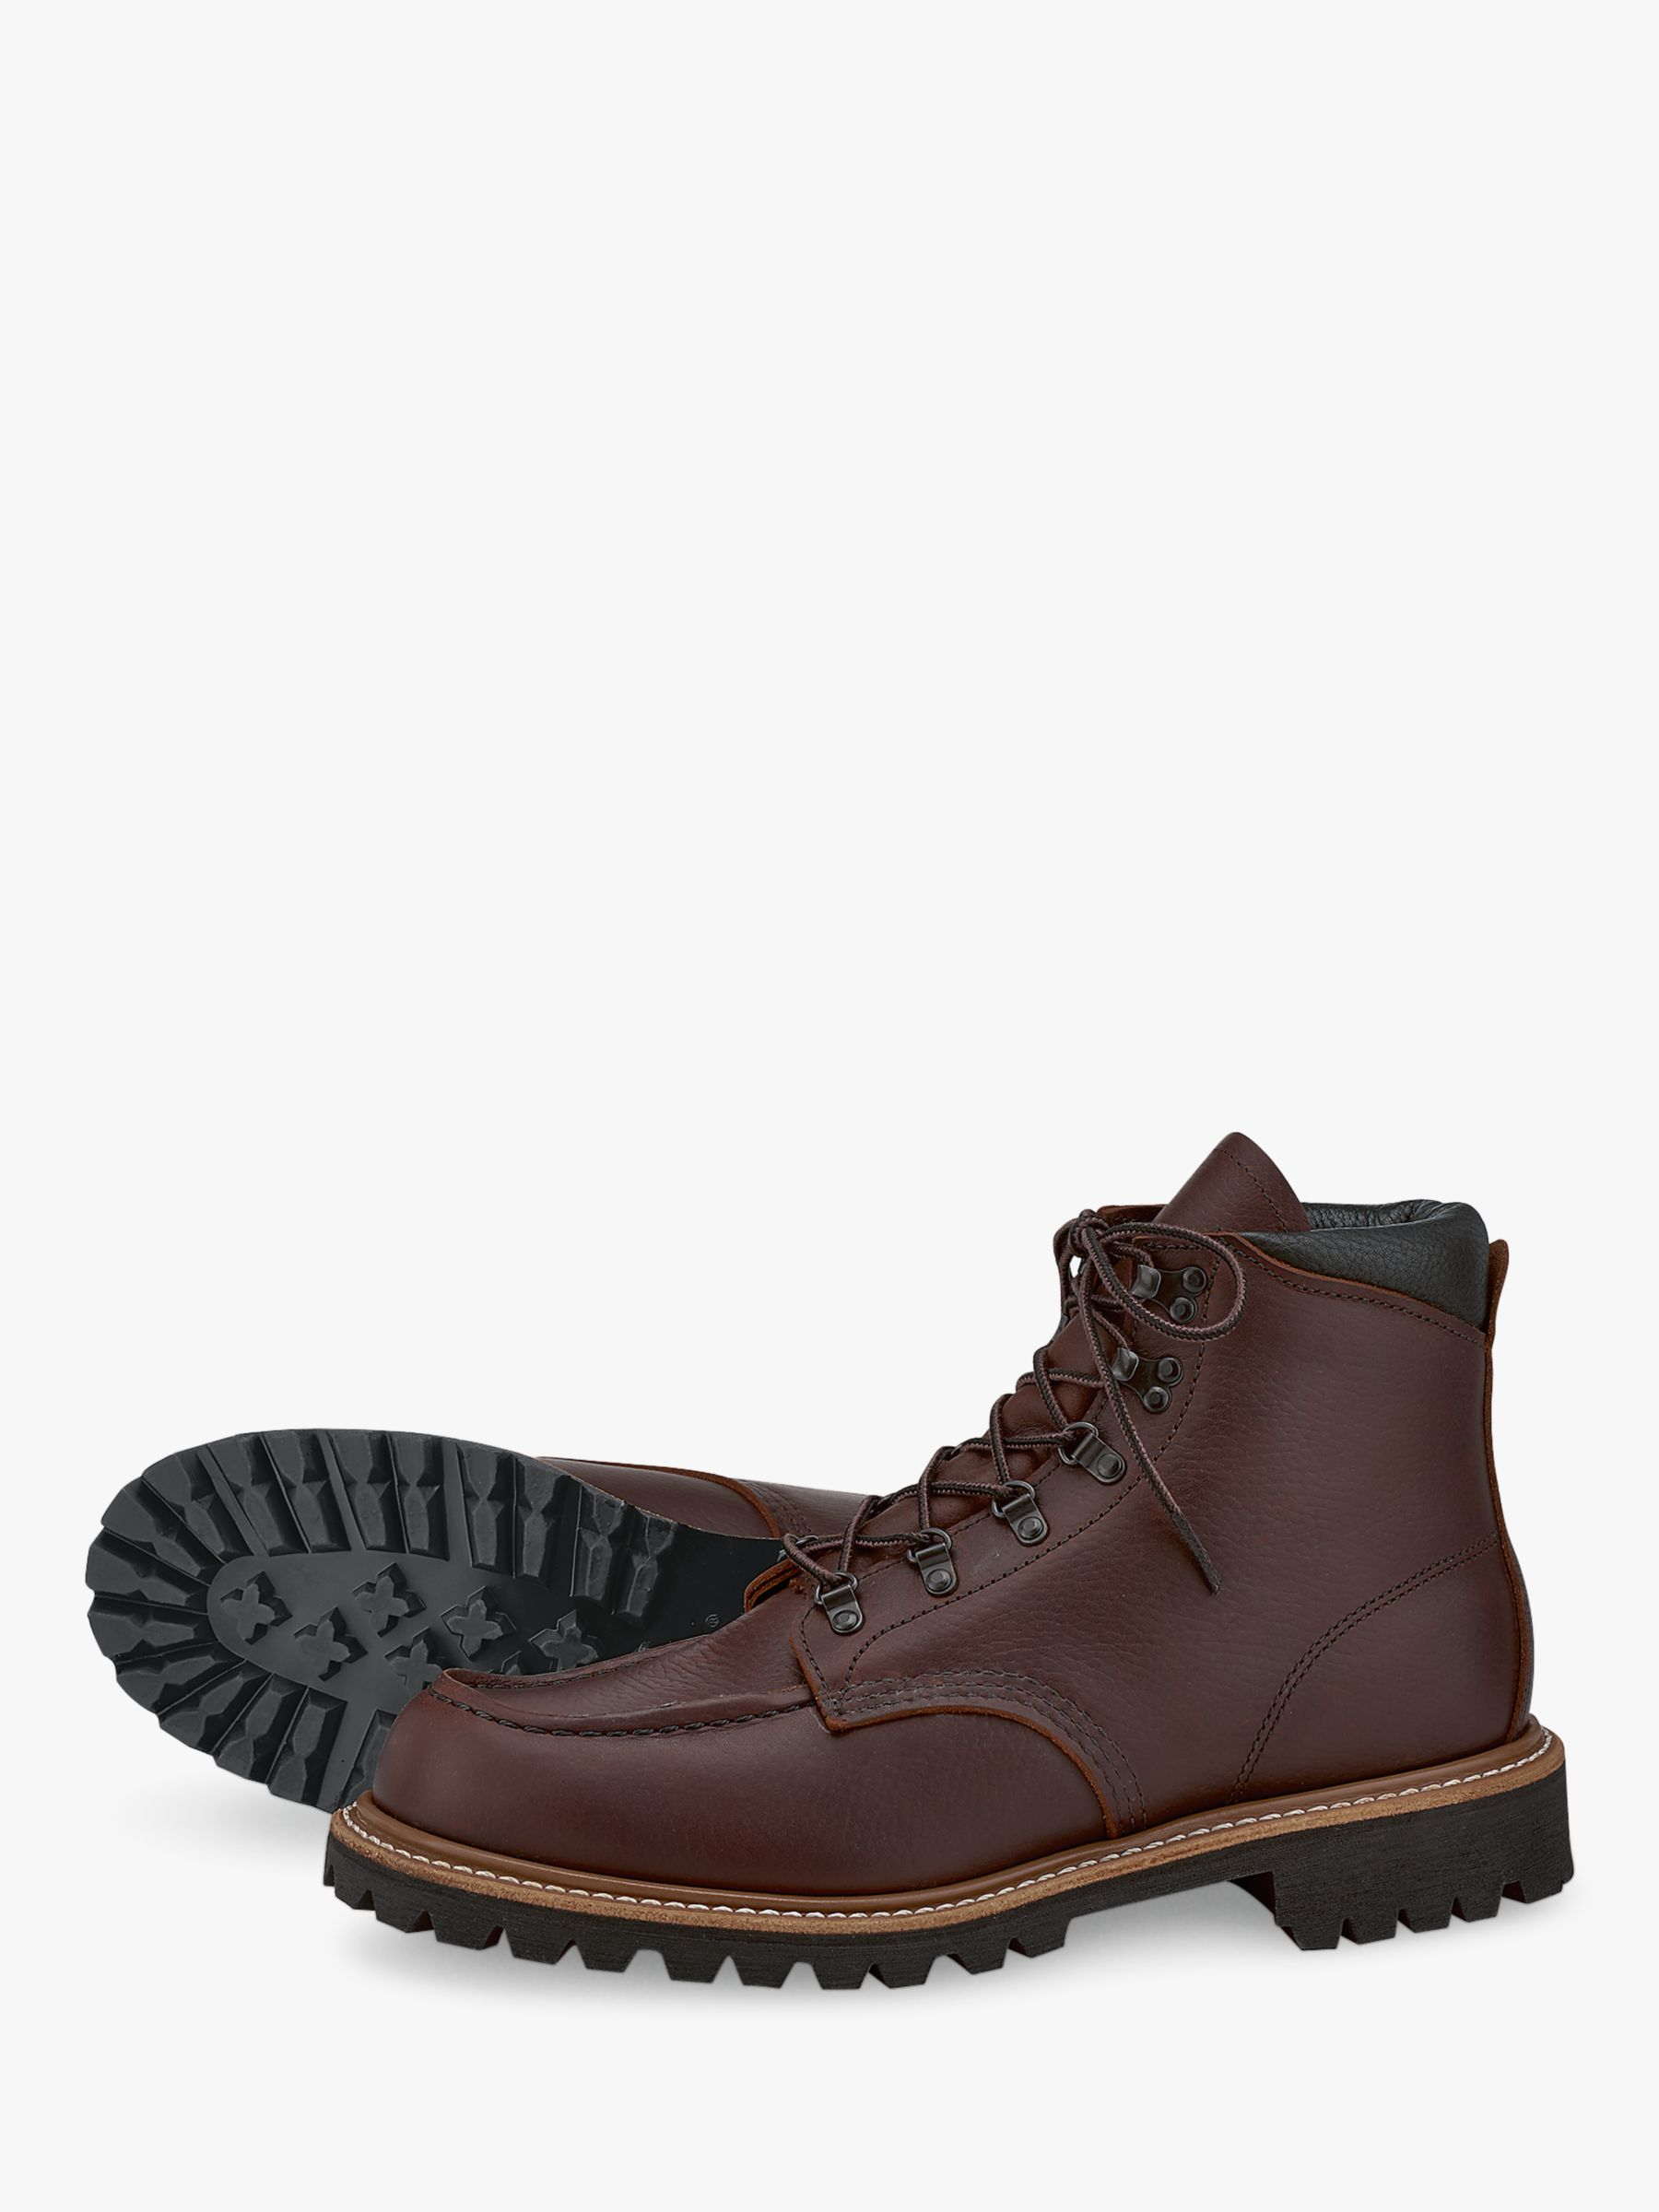 Red Wing Red Wing 2927 Sawmill Boots, Briar Oil Slick